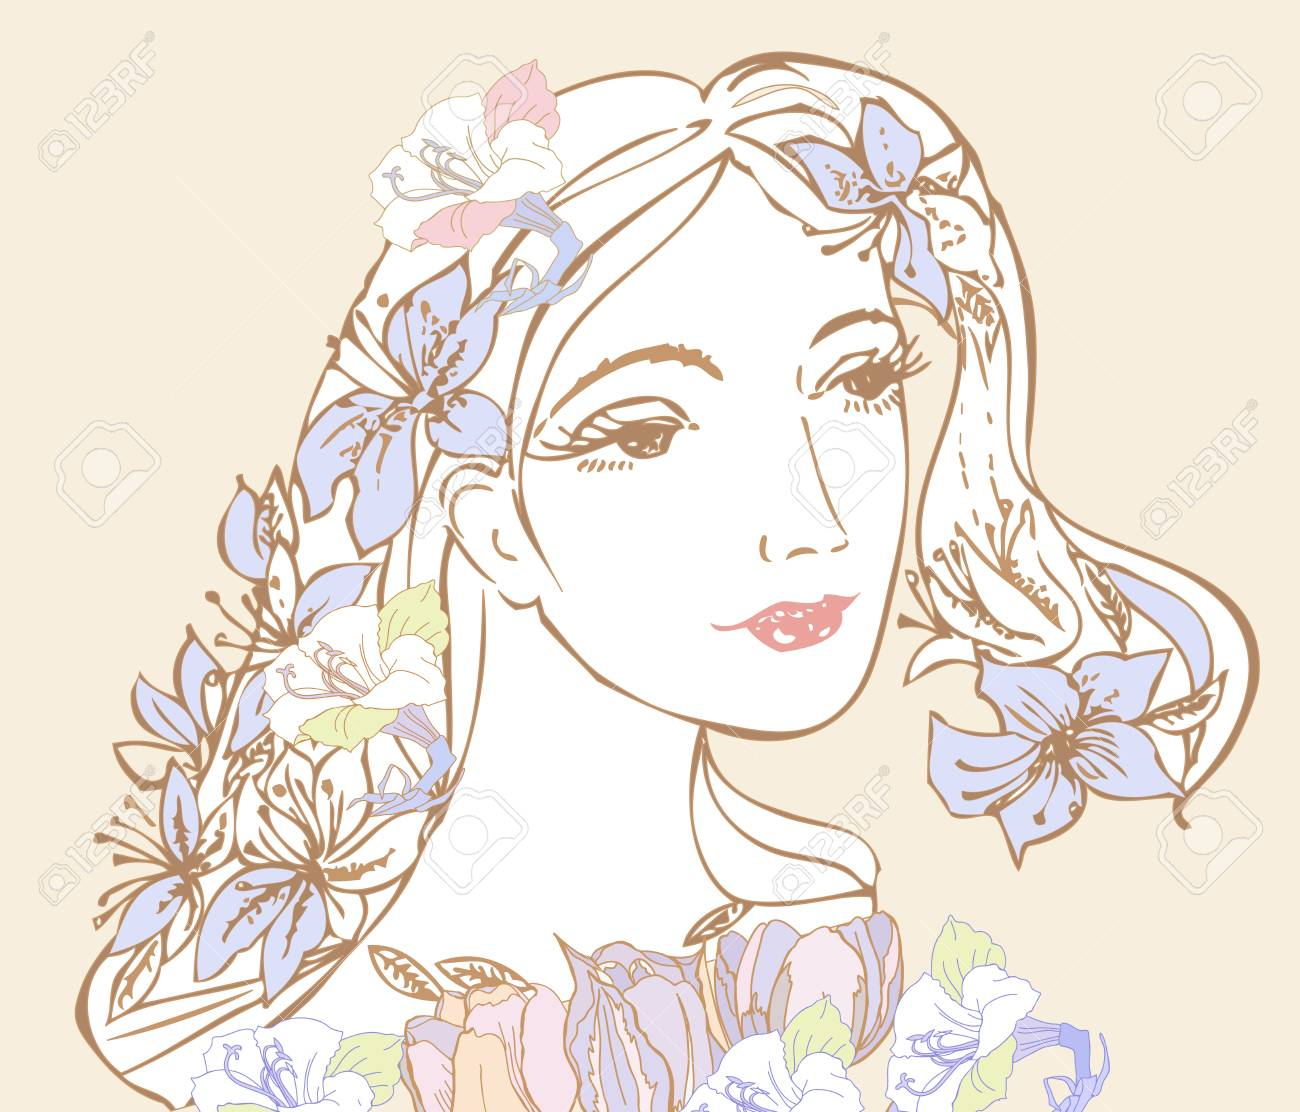 Drawing Of A Woman In Black And White With Blue Pretty Flowers